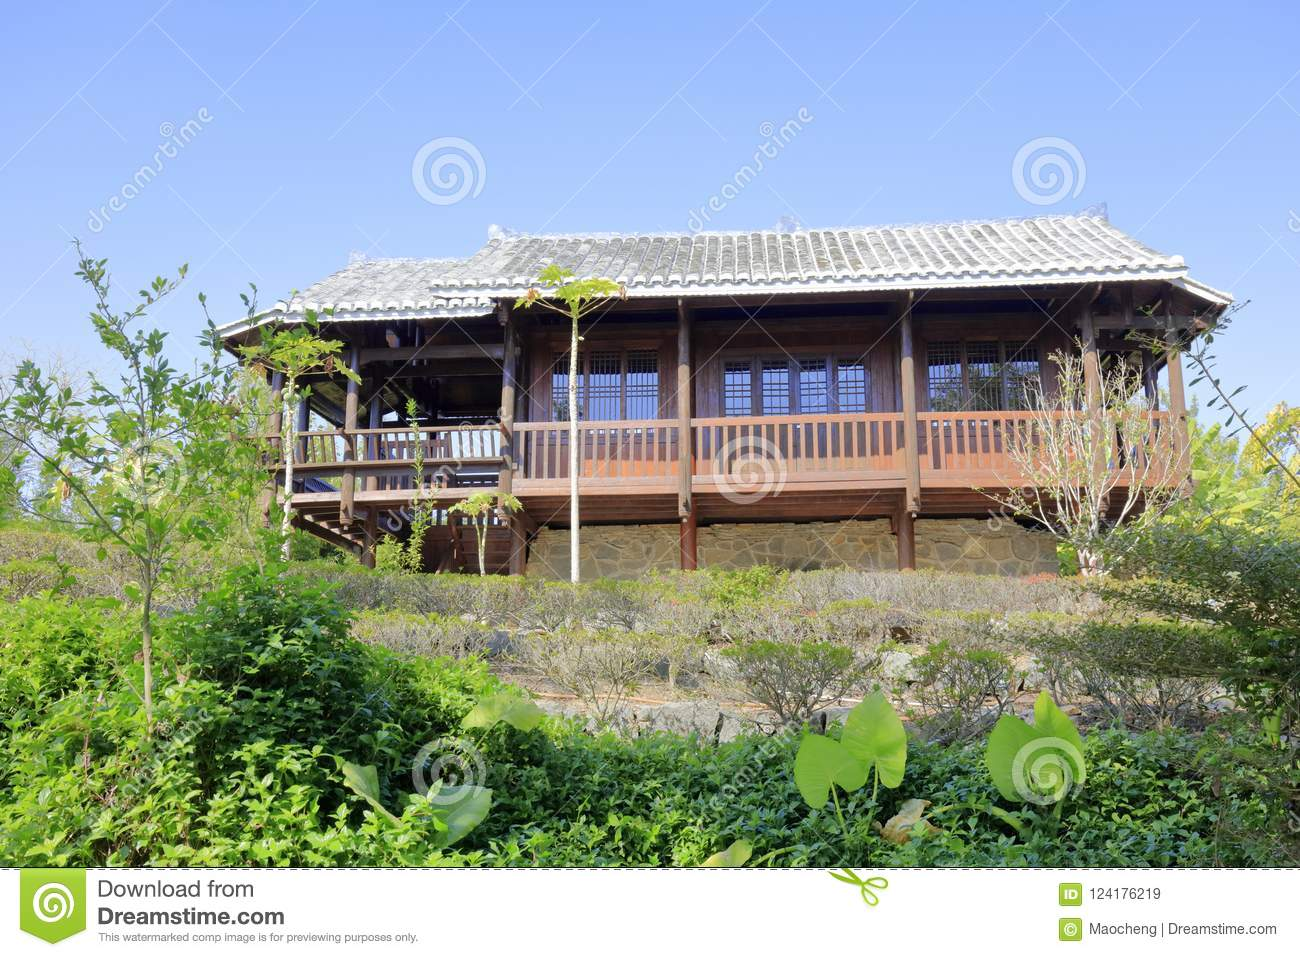 Wooden house on stilt in the yuanboyuan park xiamen city fujian province china this is a common residence for primitive people